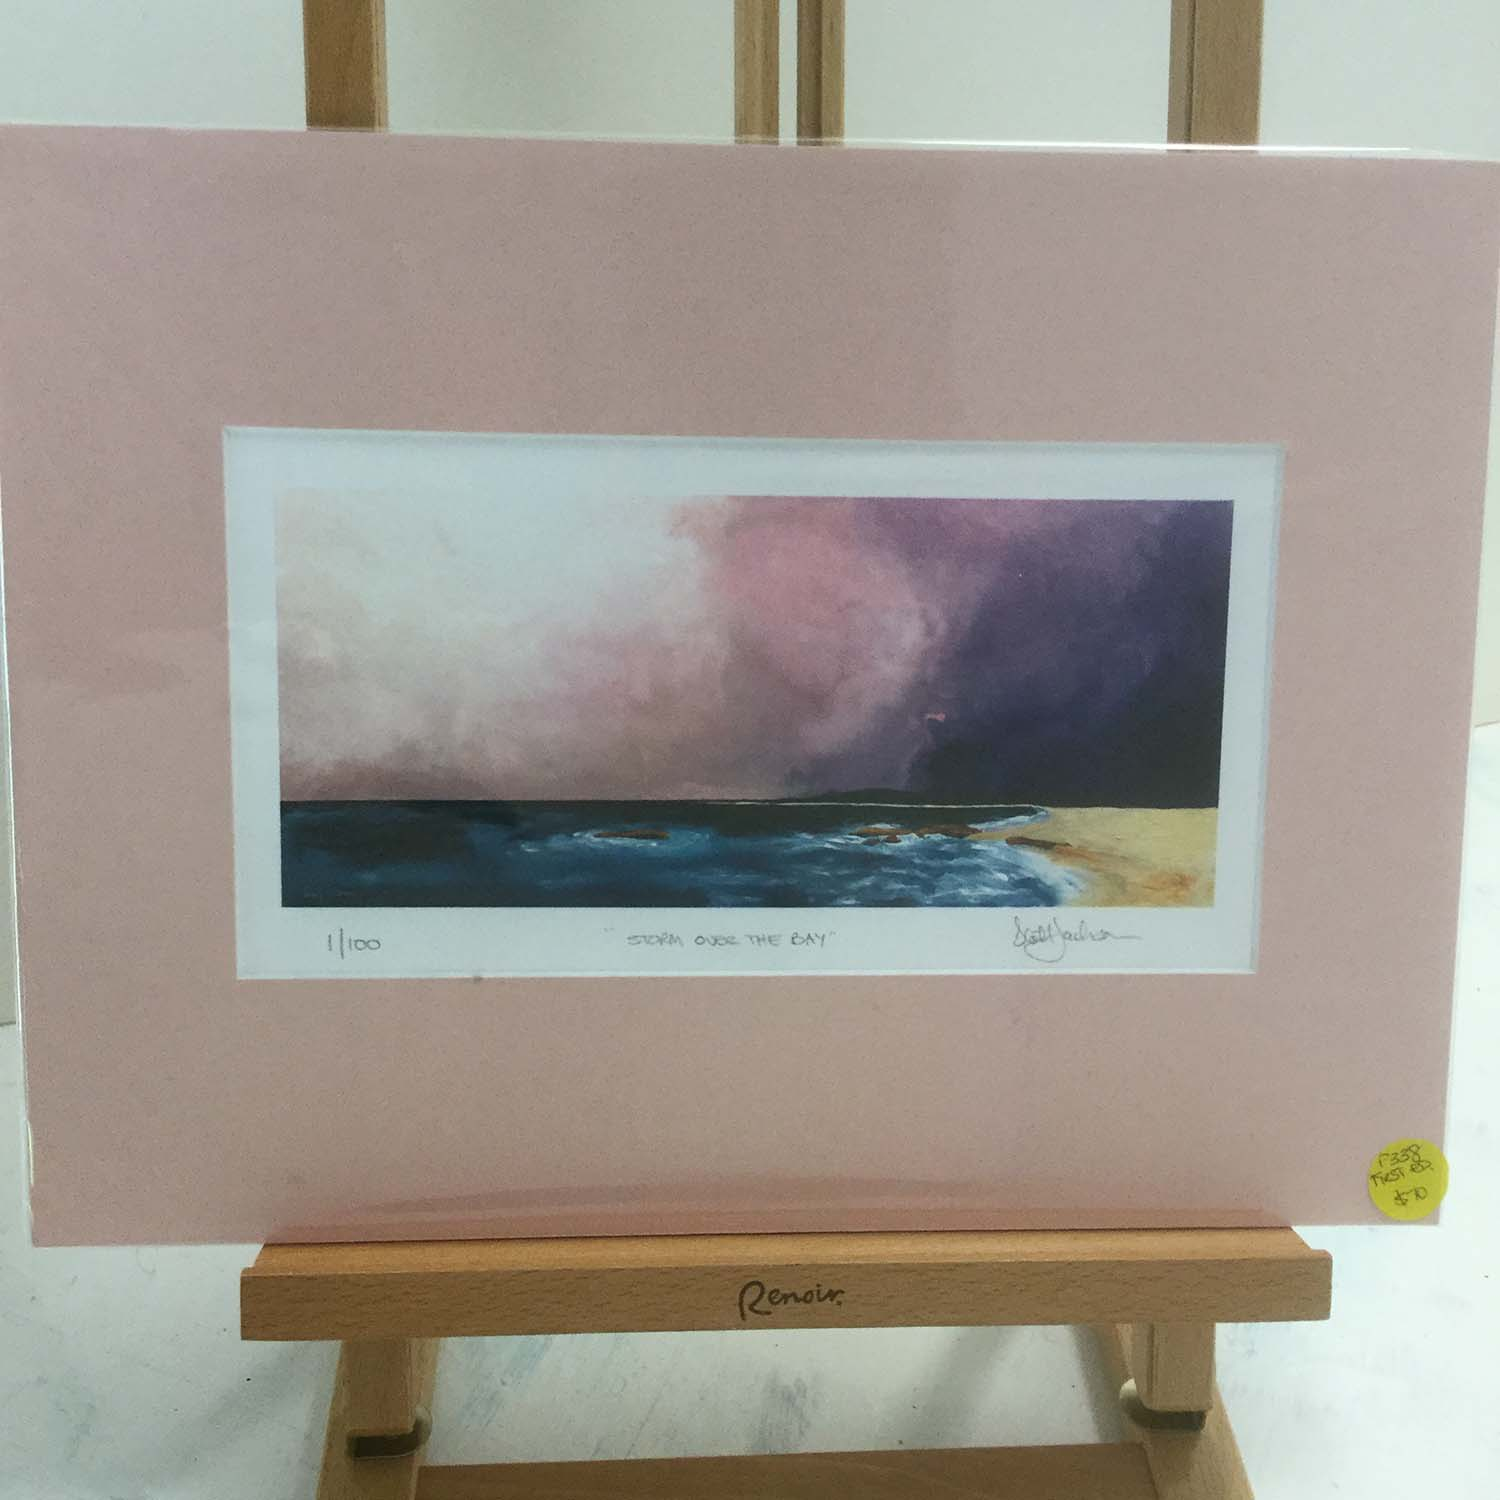 Storm Over The Bay, Trial bay , SWR, $70, First Edition , signed, 1/100, A4 size image, Pink Mat.